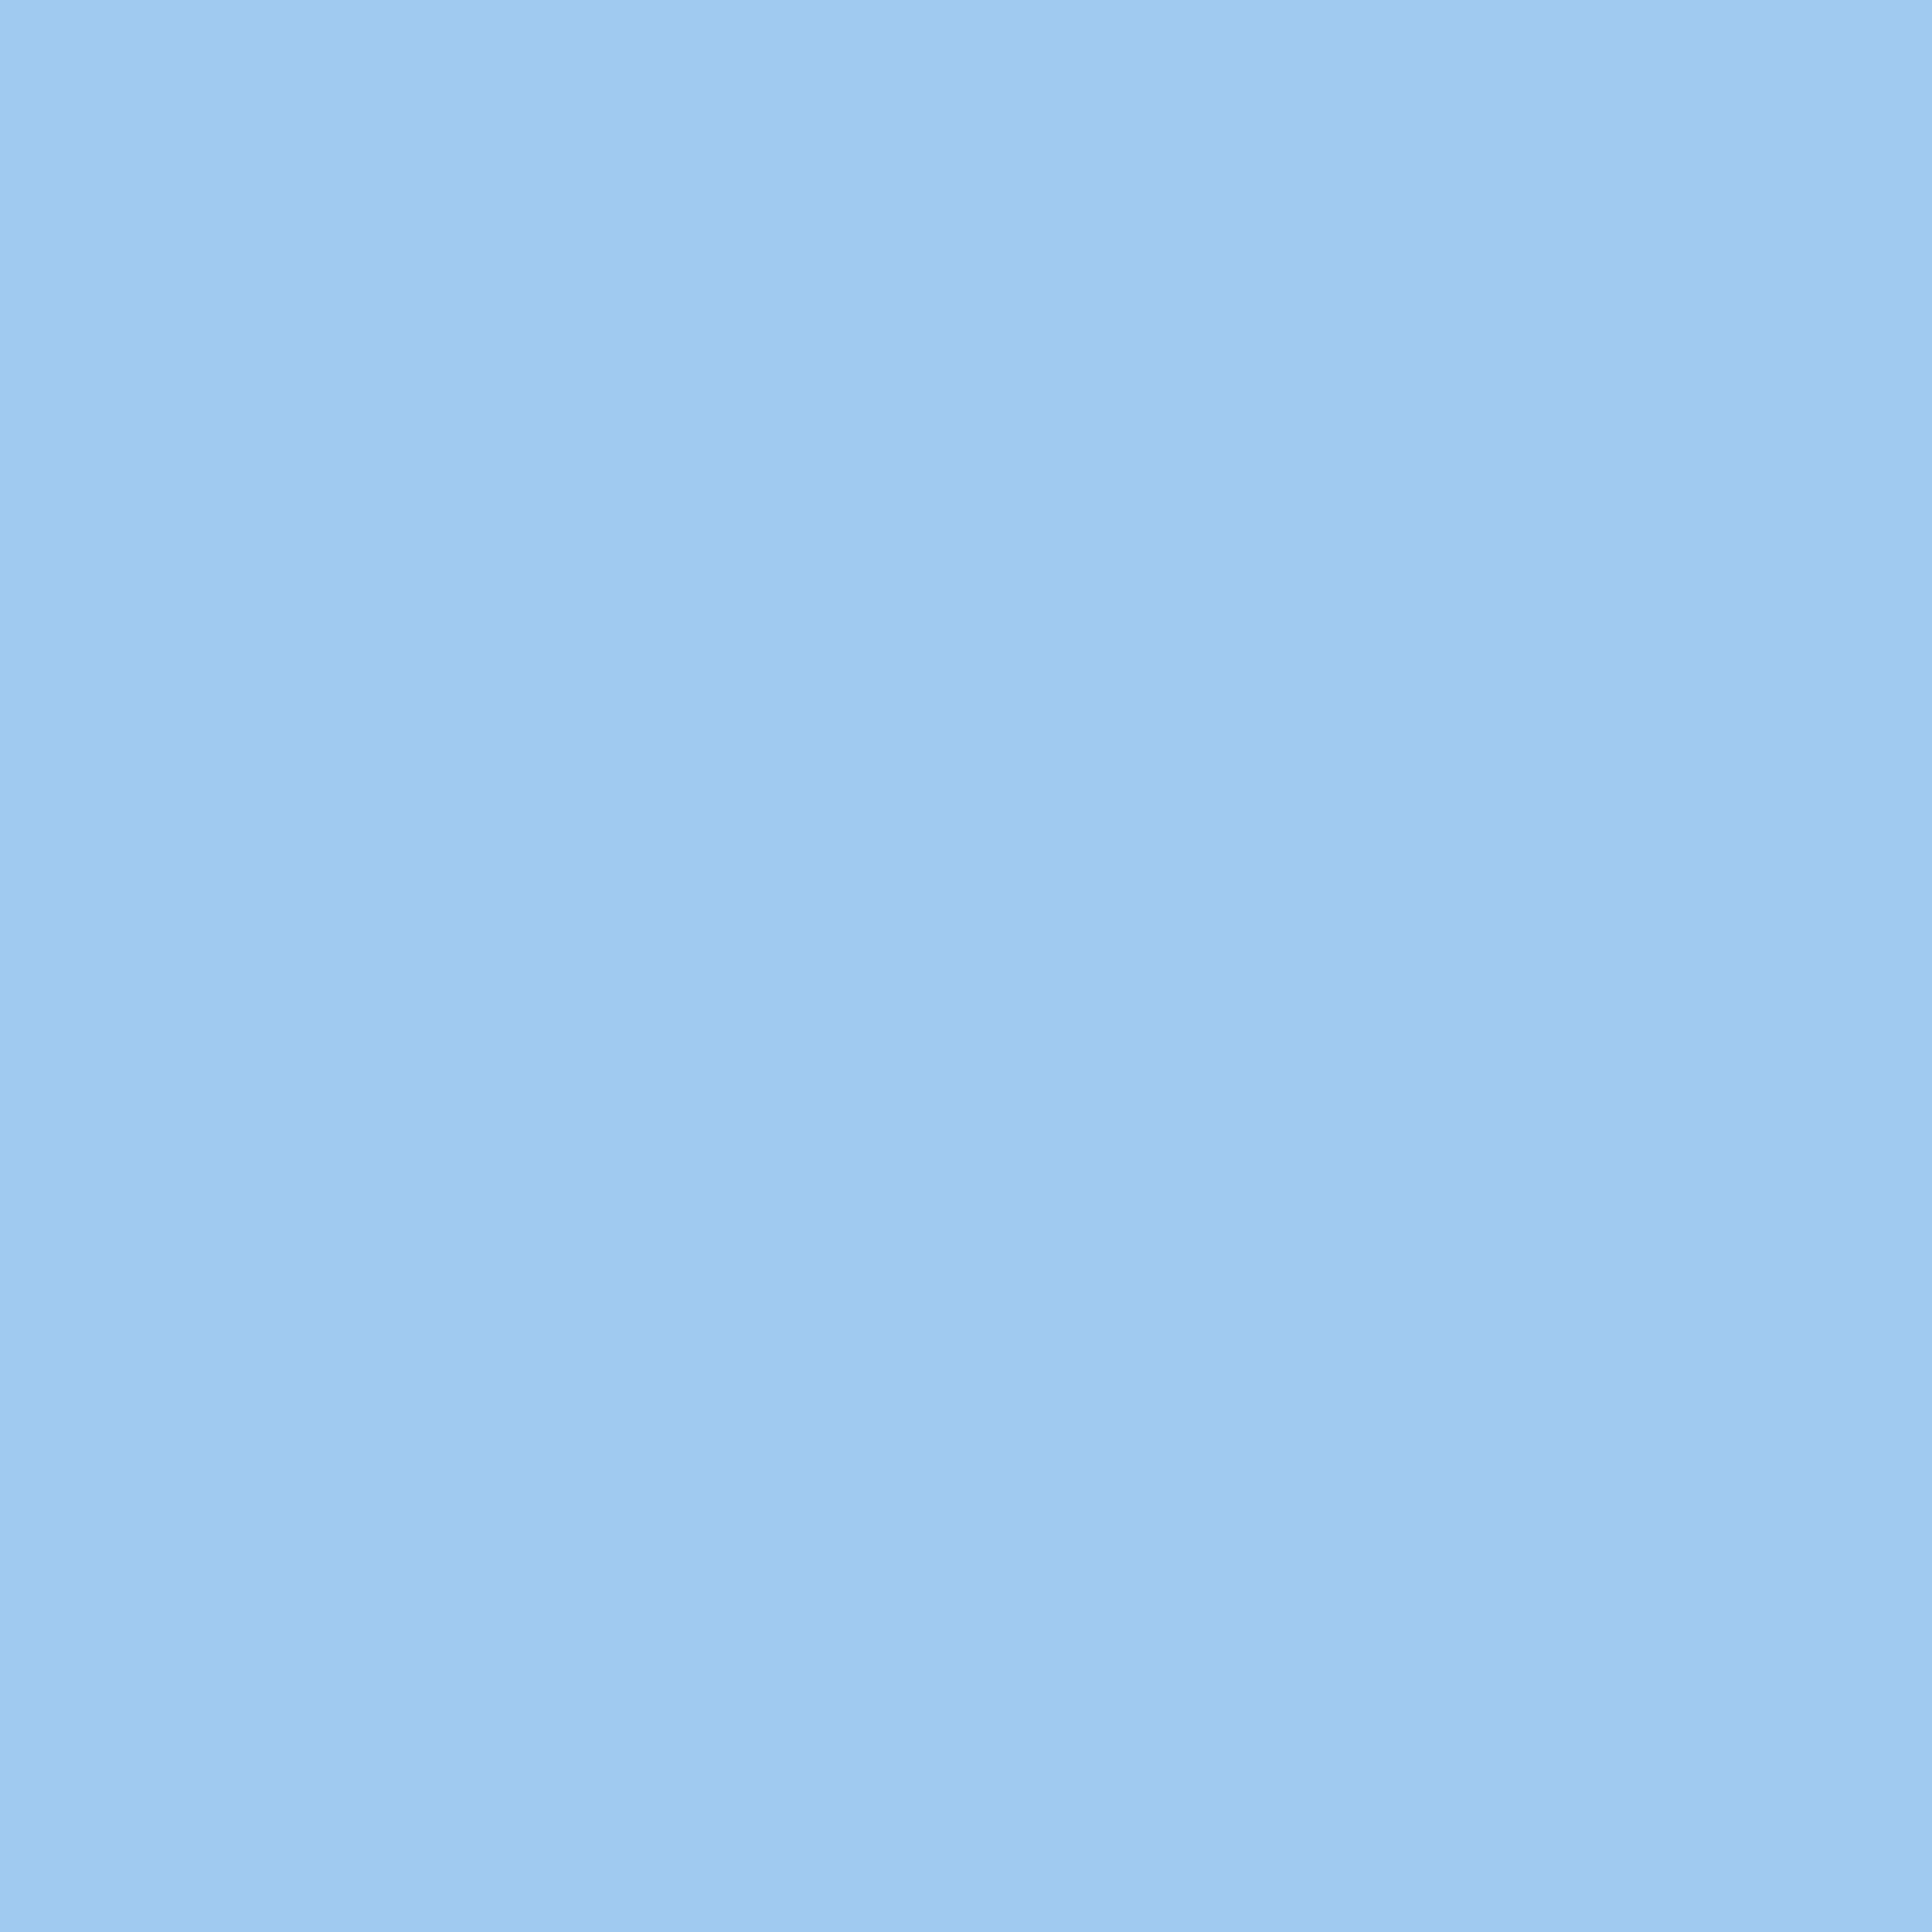 3600x3600 Baby Blue Eyes Solid Color Background